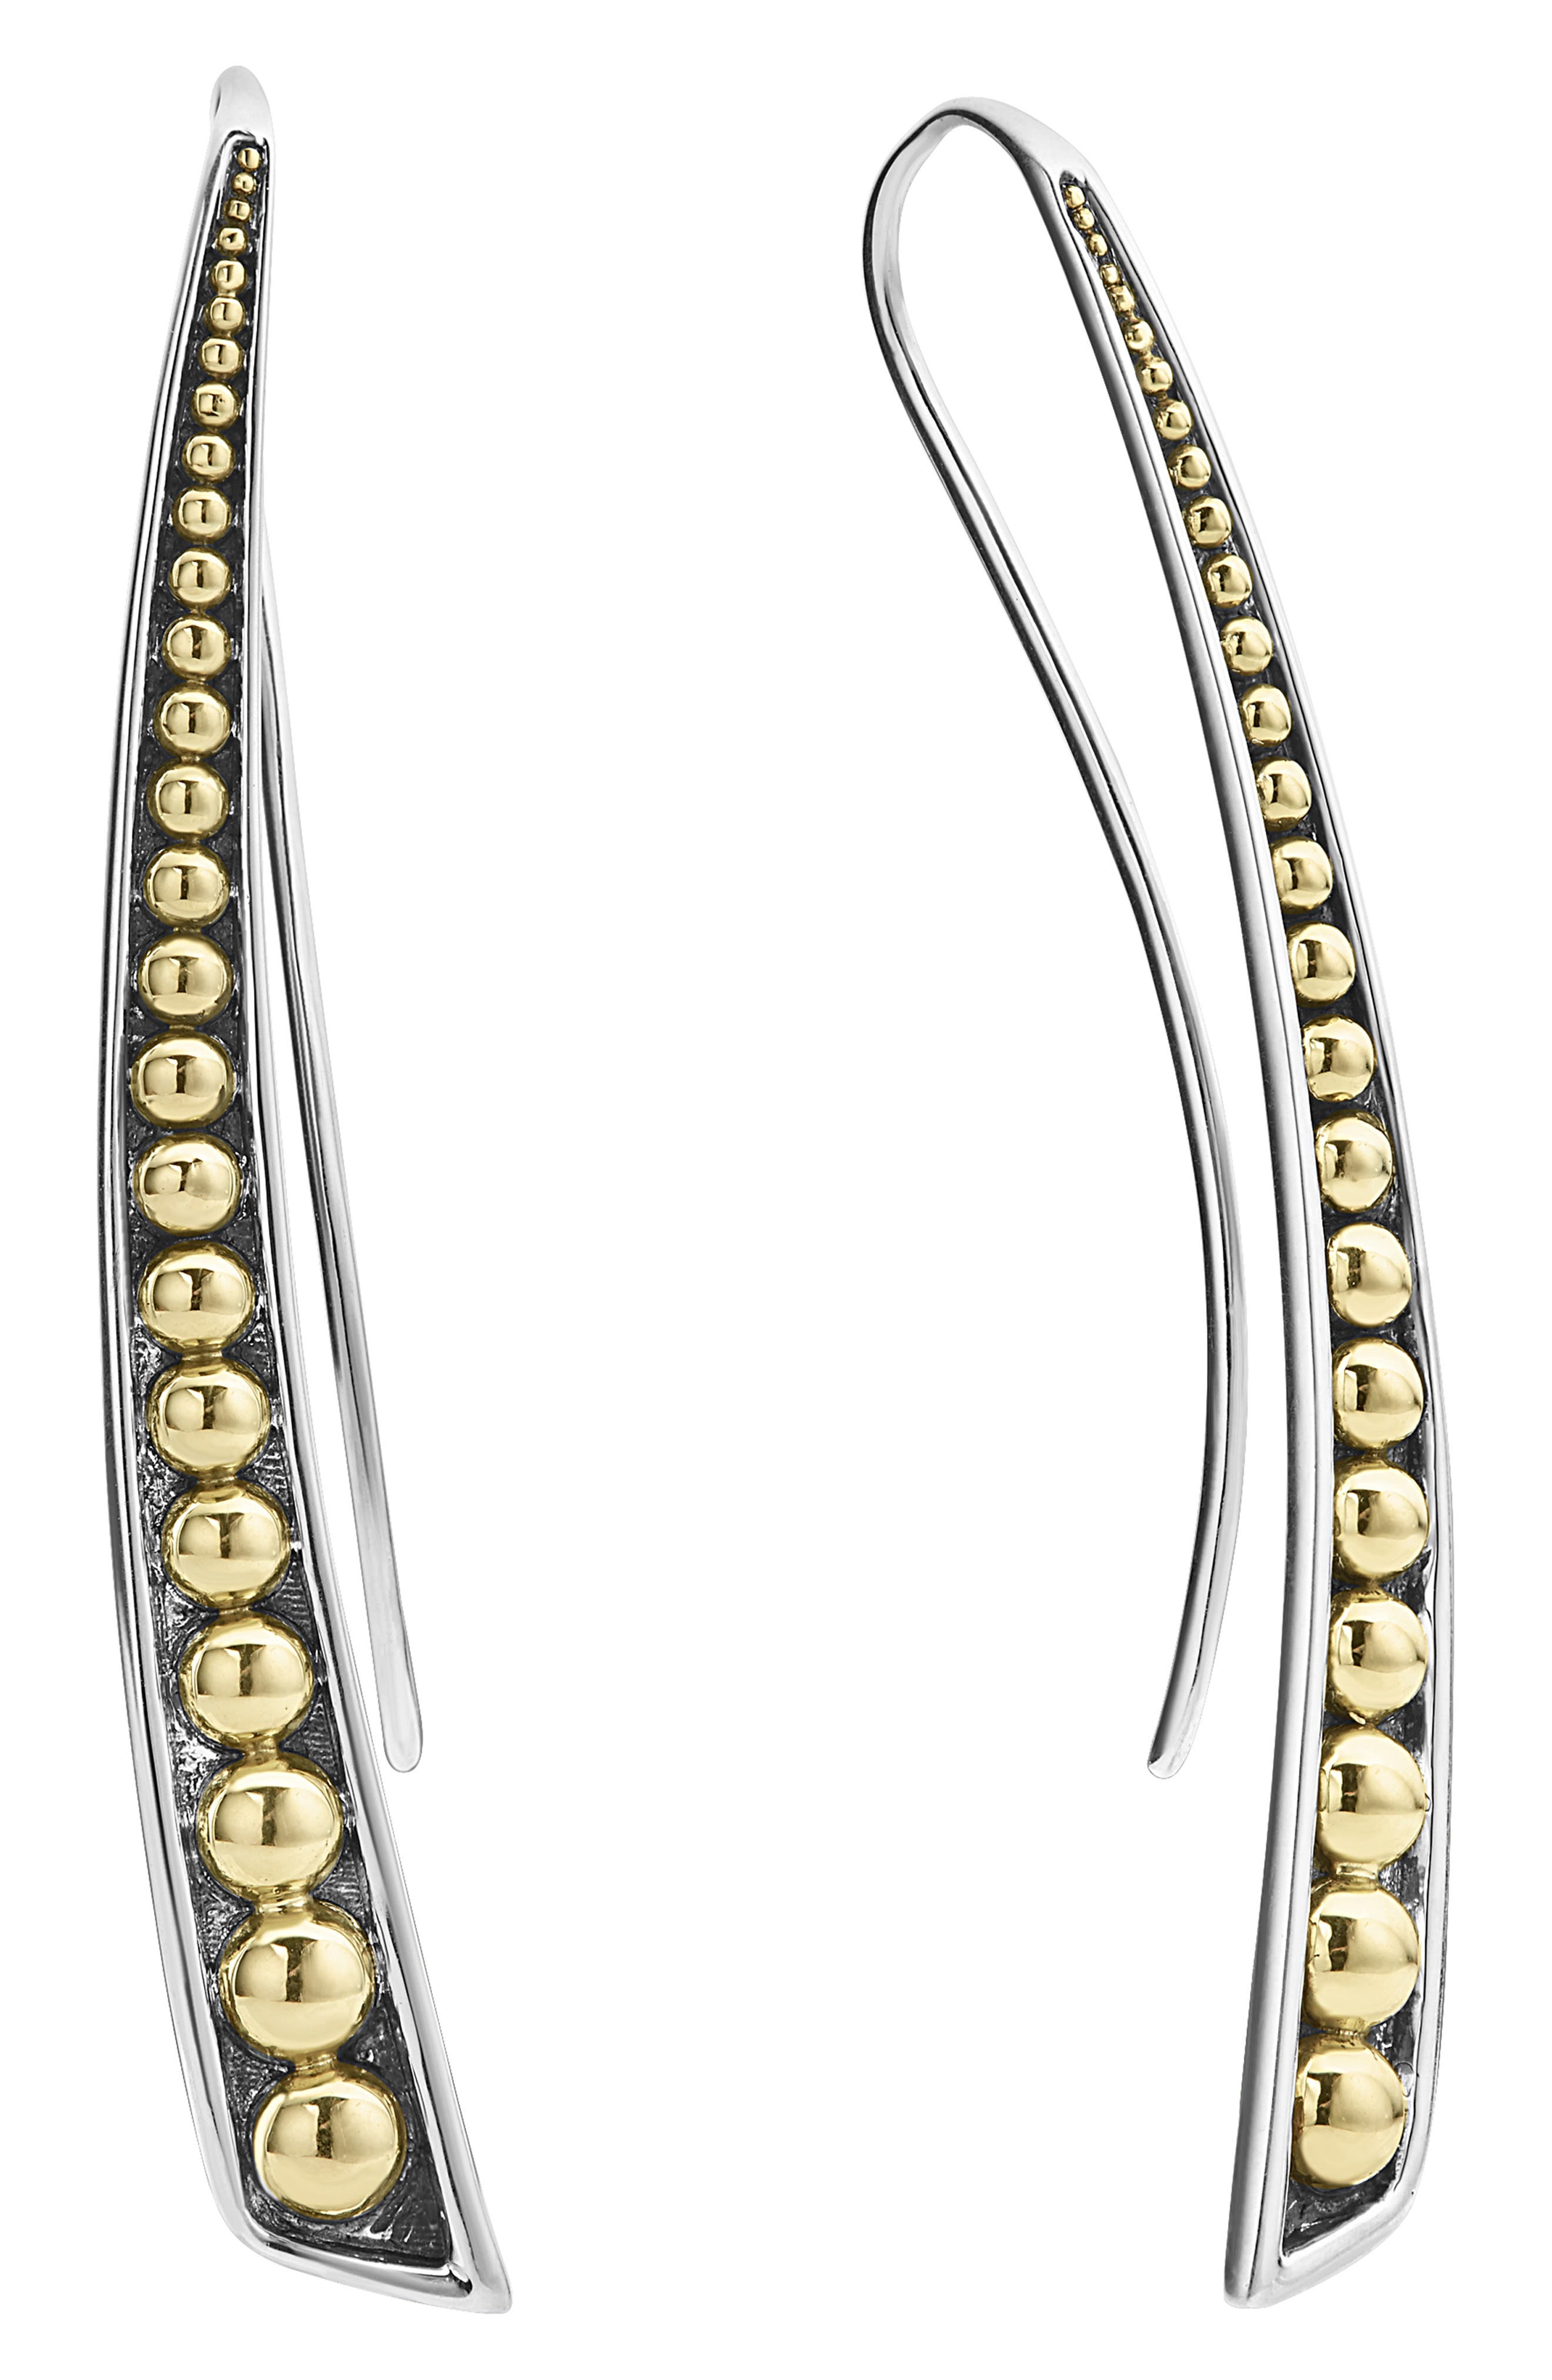 Signature Caviar Curved Linear Earrings,                             Alternate thumbnail 3, color,                             SILVER/ GOLD